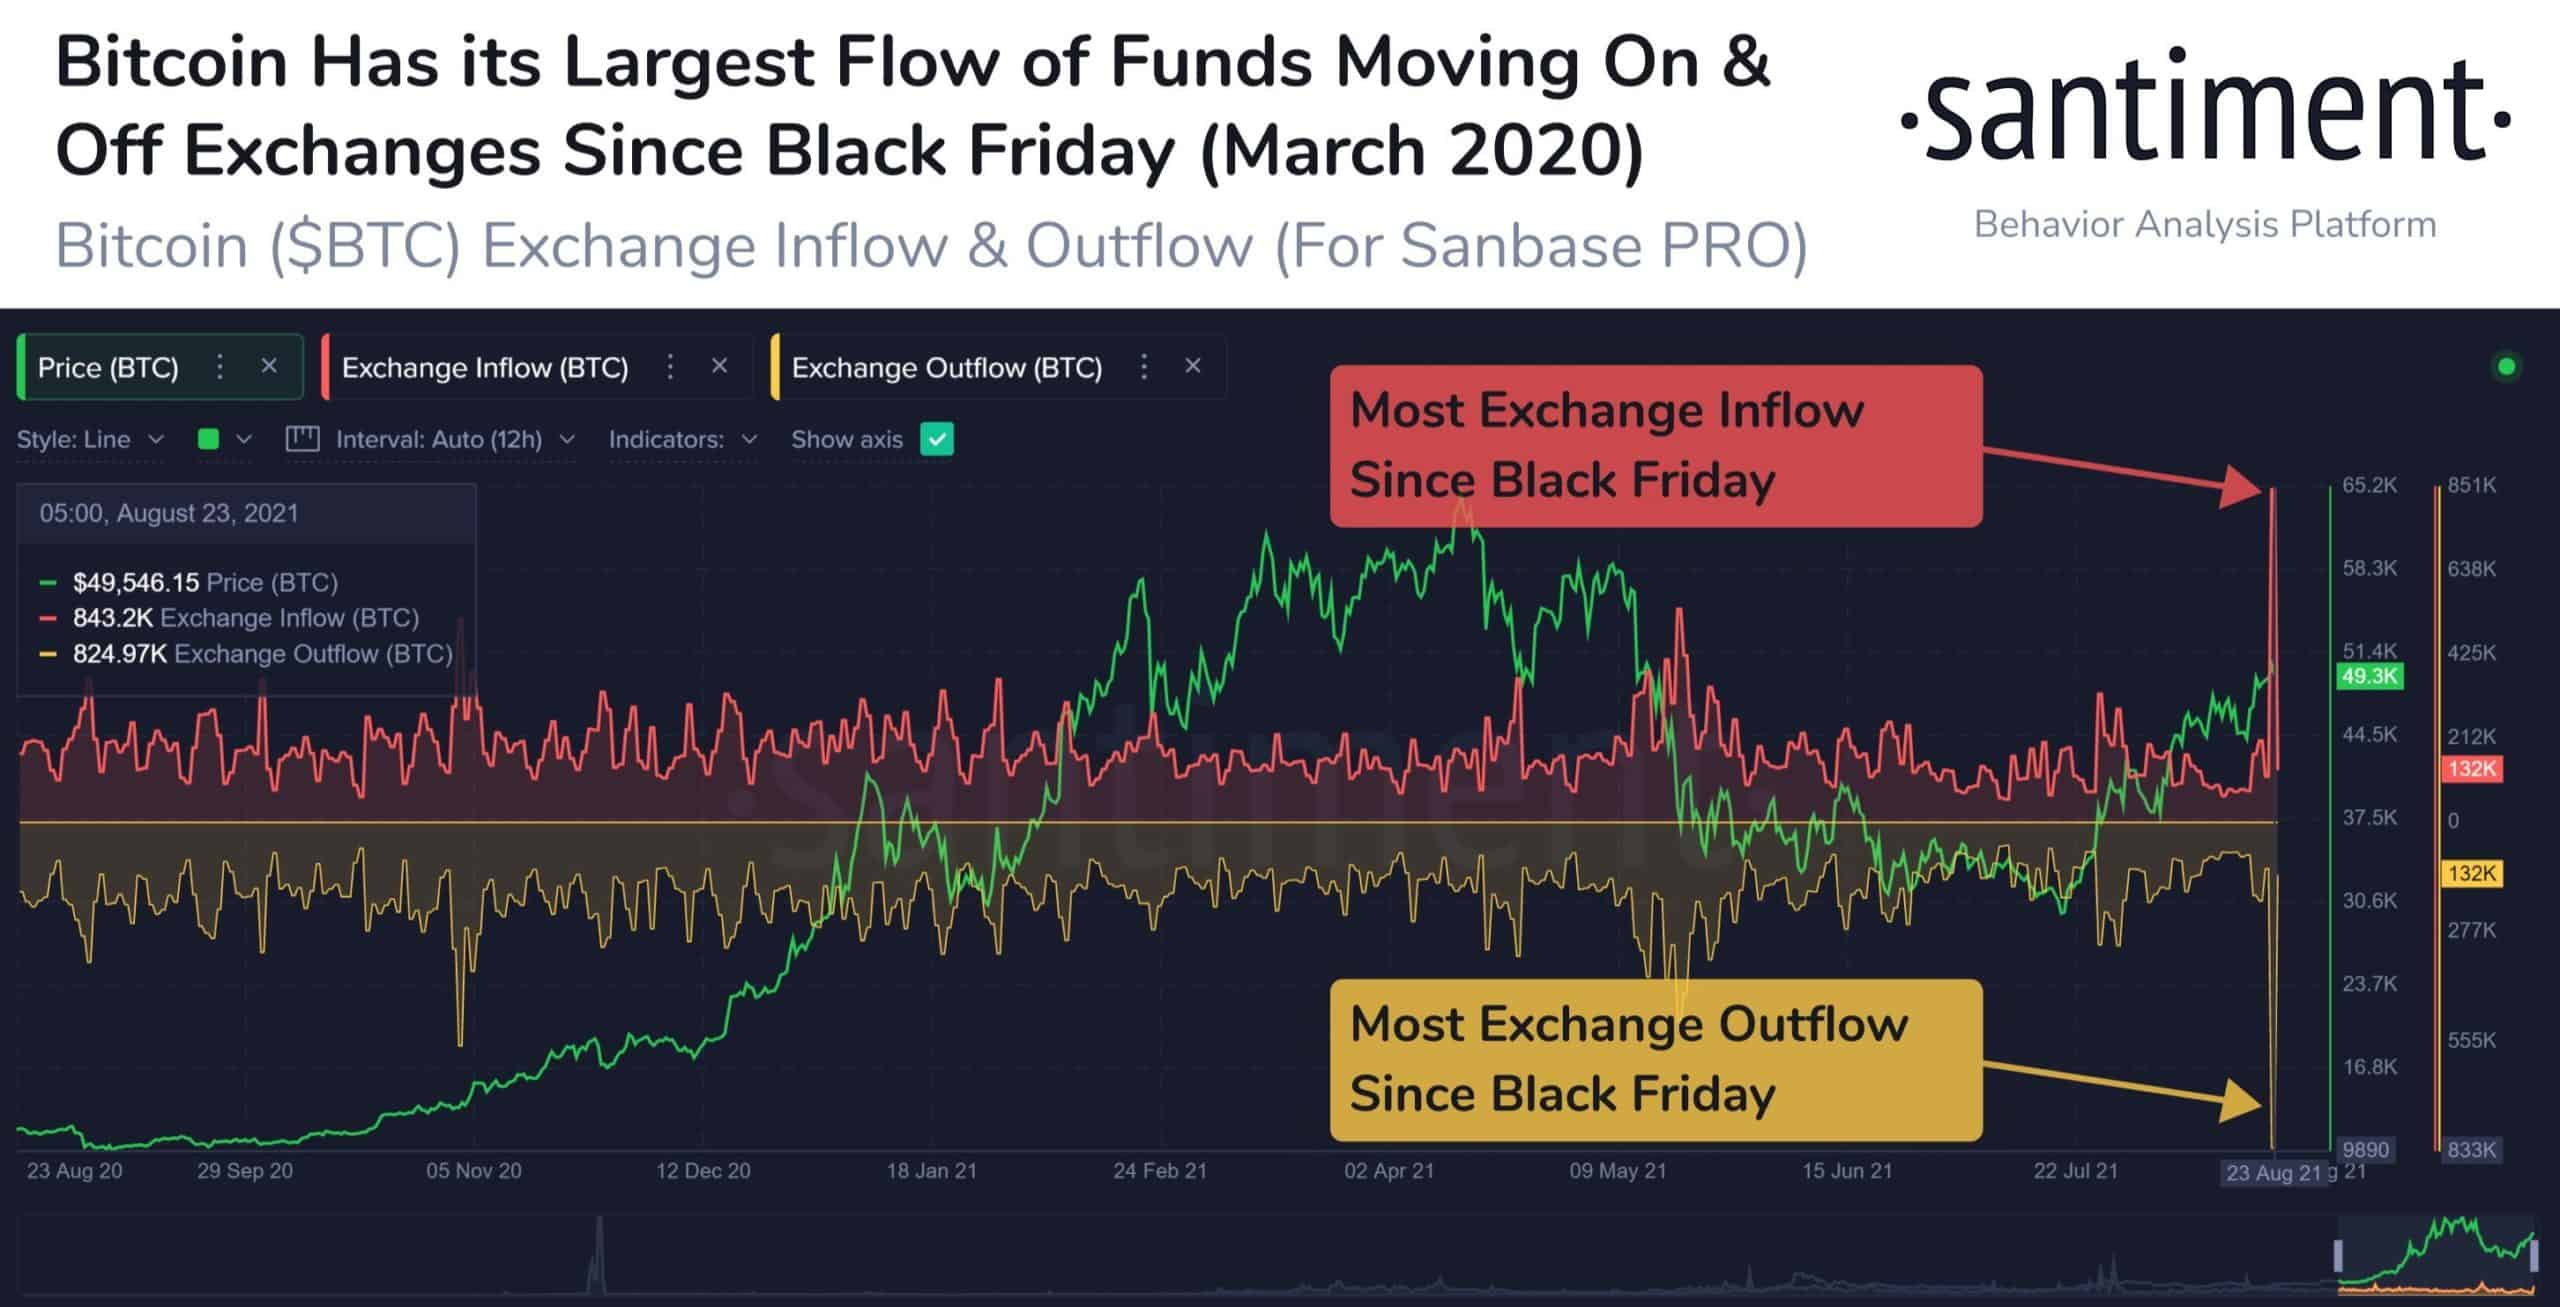 Bitcoin On and Off Exchanges. Source: Santiment